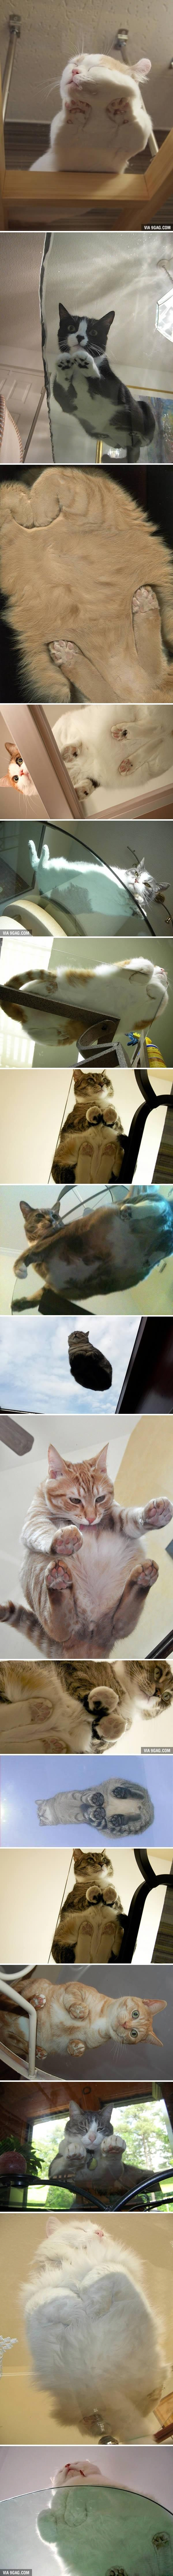 17 Pictures Of Cats On Glass... Not sure why, but this never seems to get old! xD